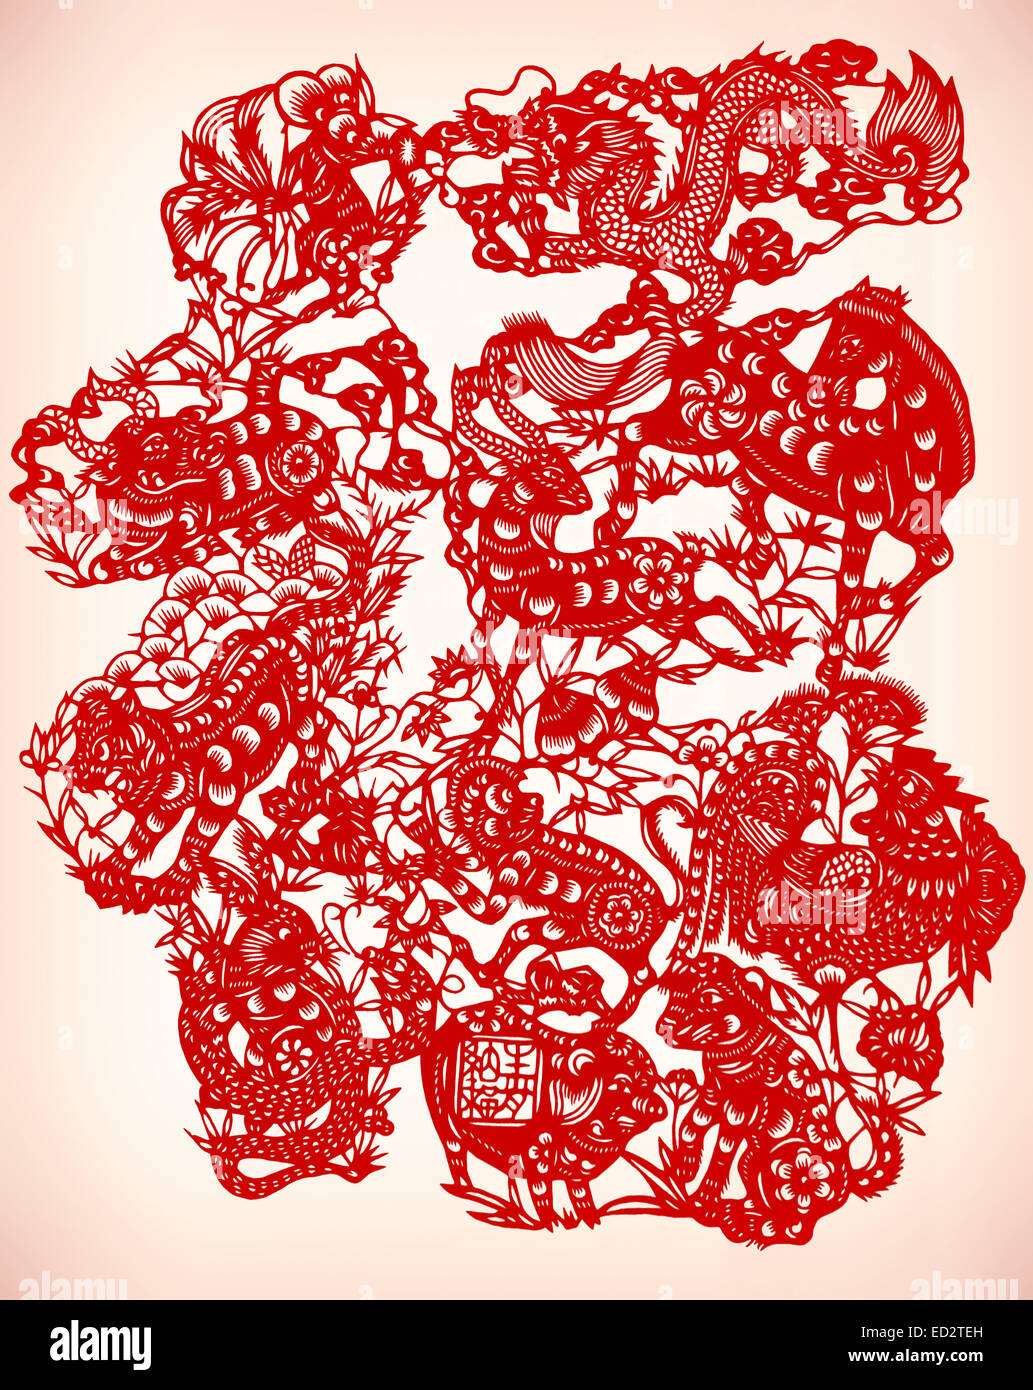 Chinese paper cutting Jianzhi, cut out red paper art in China - Stock Image